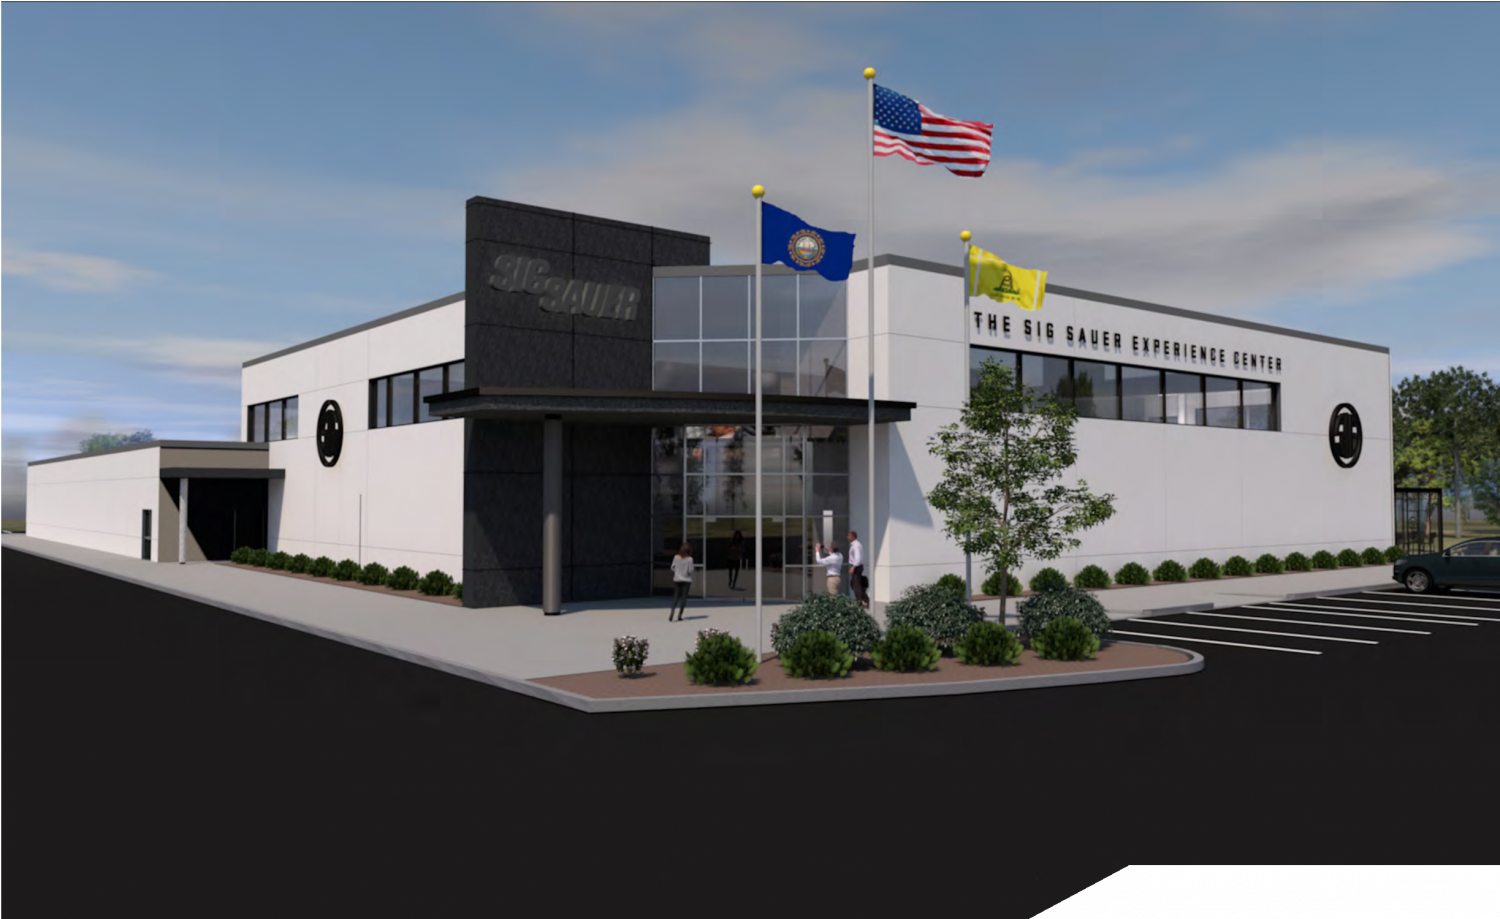 This is what the SIG SAUER Experience Center should look like once construction has been completed.